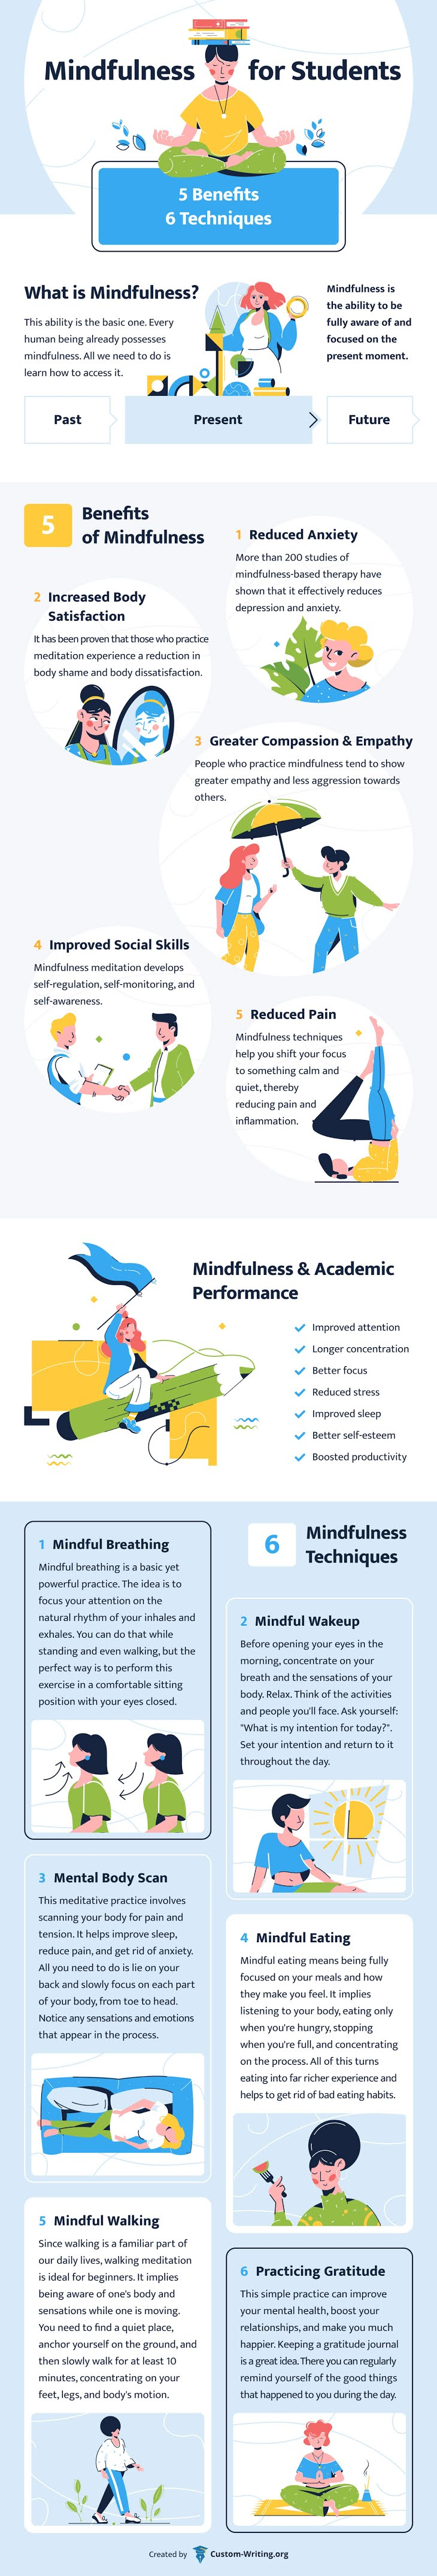 Mindfulness for Students: 5 Benefits & 6 Techniques #infographic #Education #Students #infographics #Study Hacks